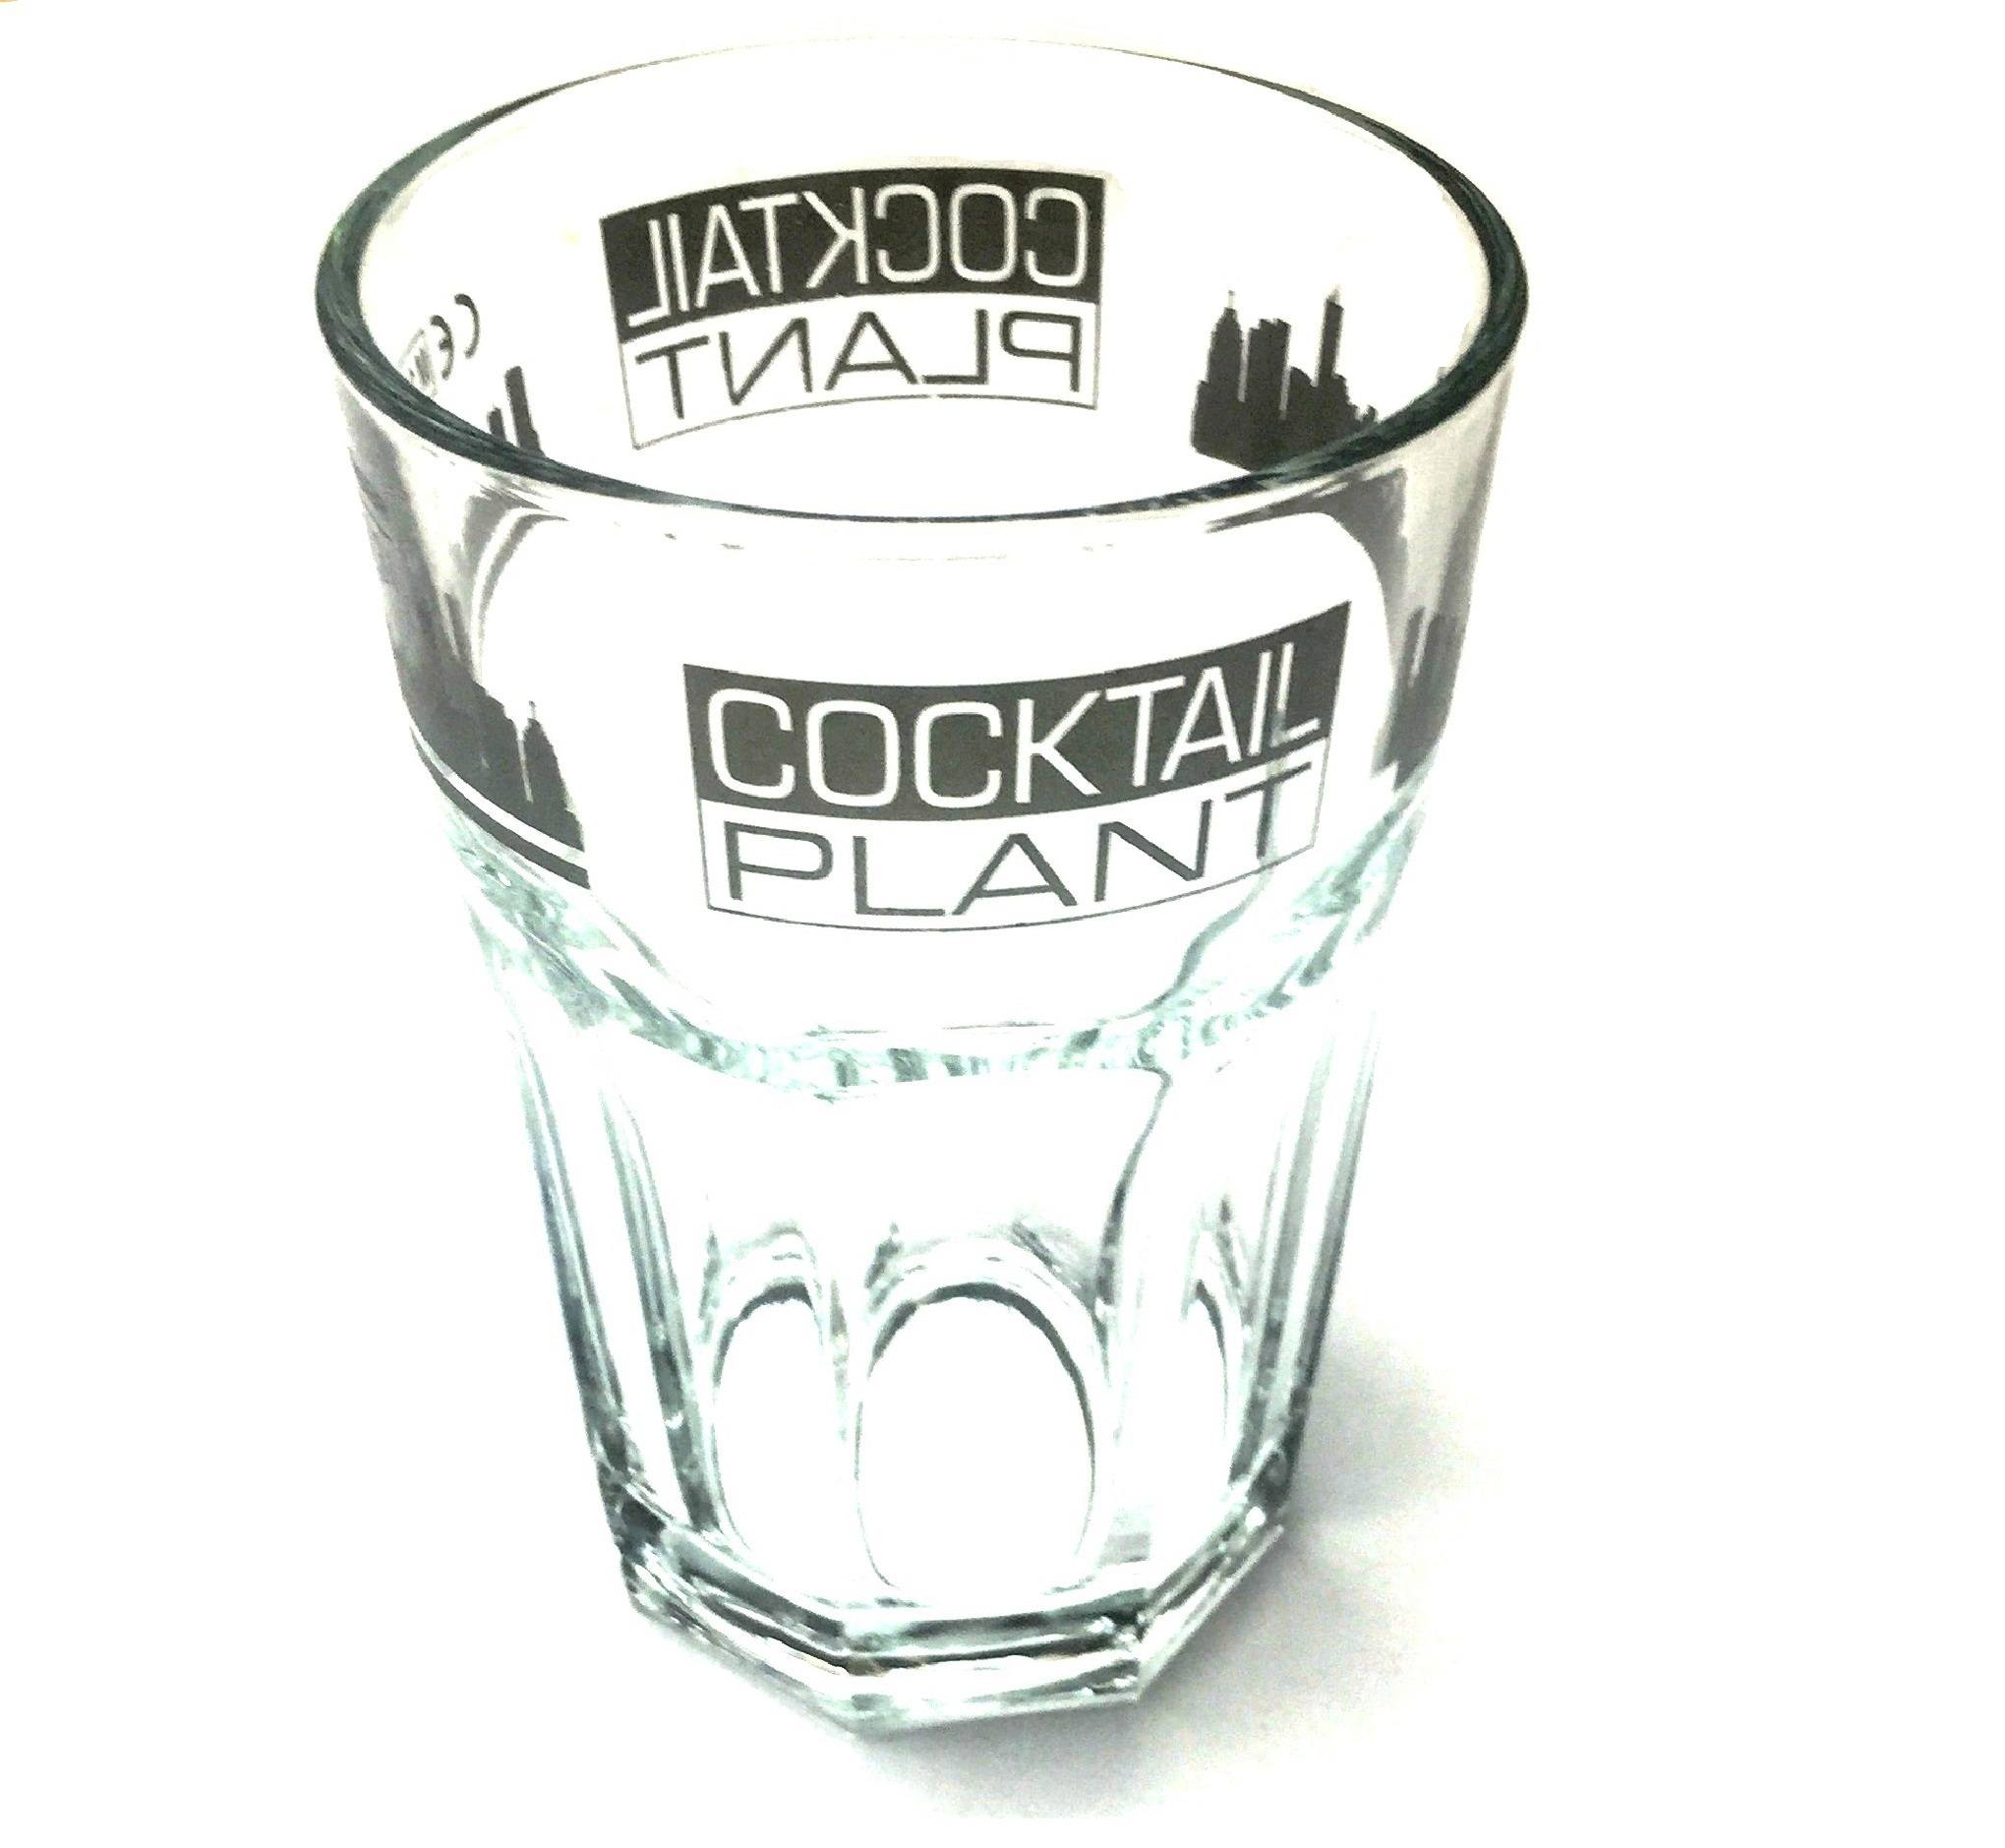 Cocktail Gläser plant glas 34cl cocktailgläser